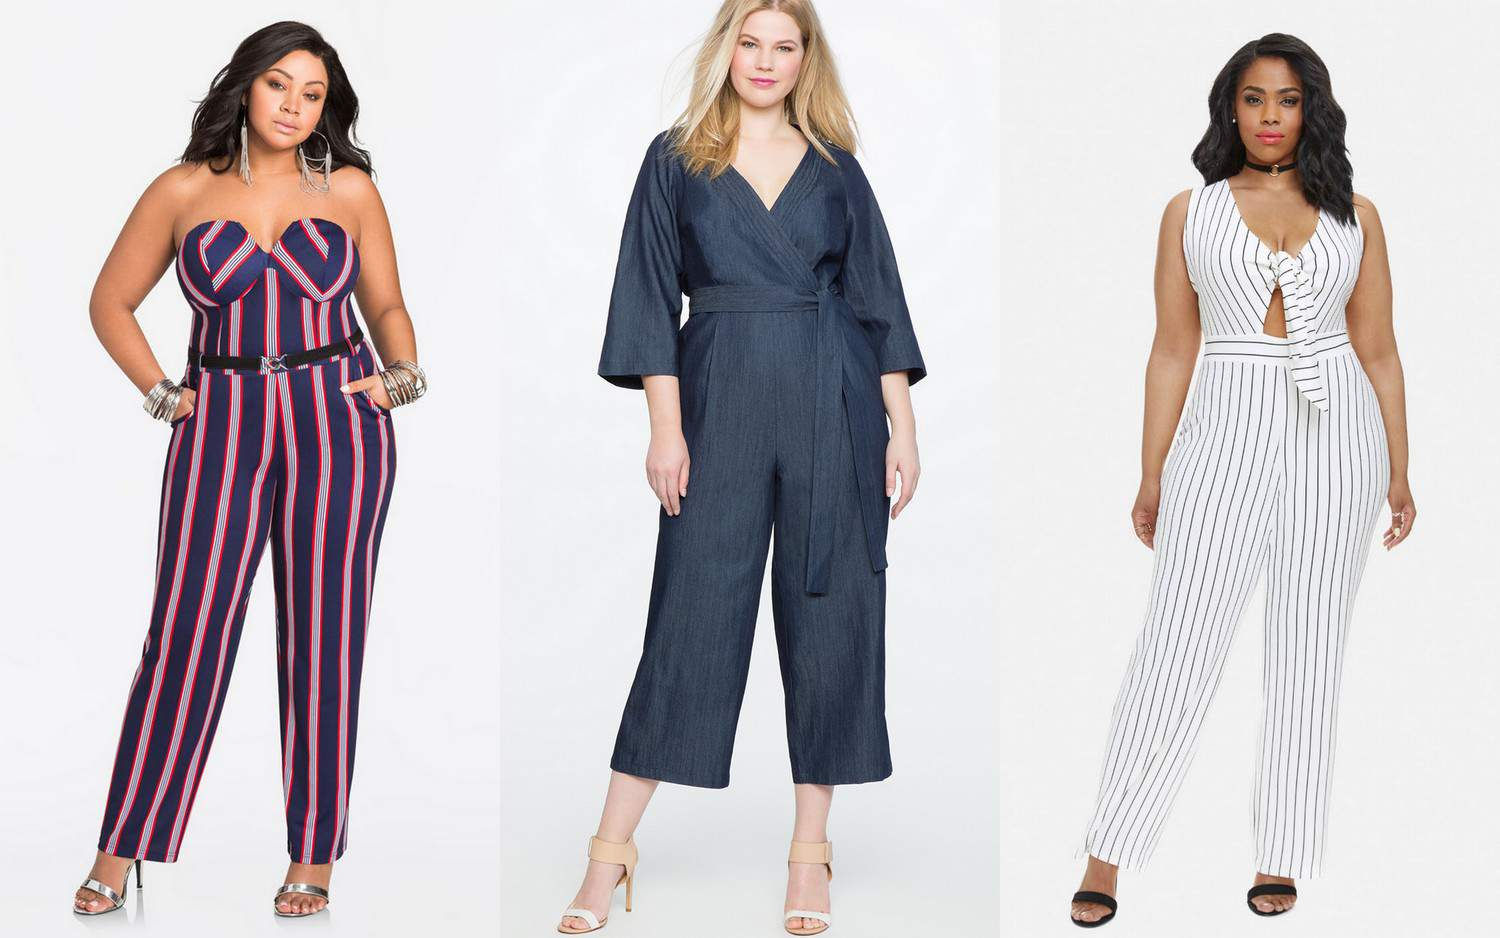 d9022e72a575 How do you feel about jumpsuits  Are you on the hunt for the perfect plus